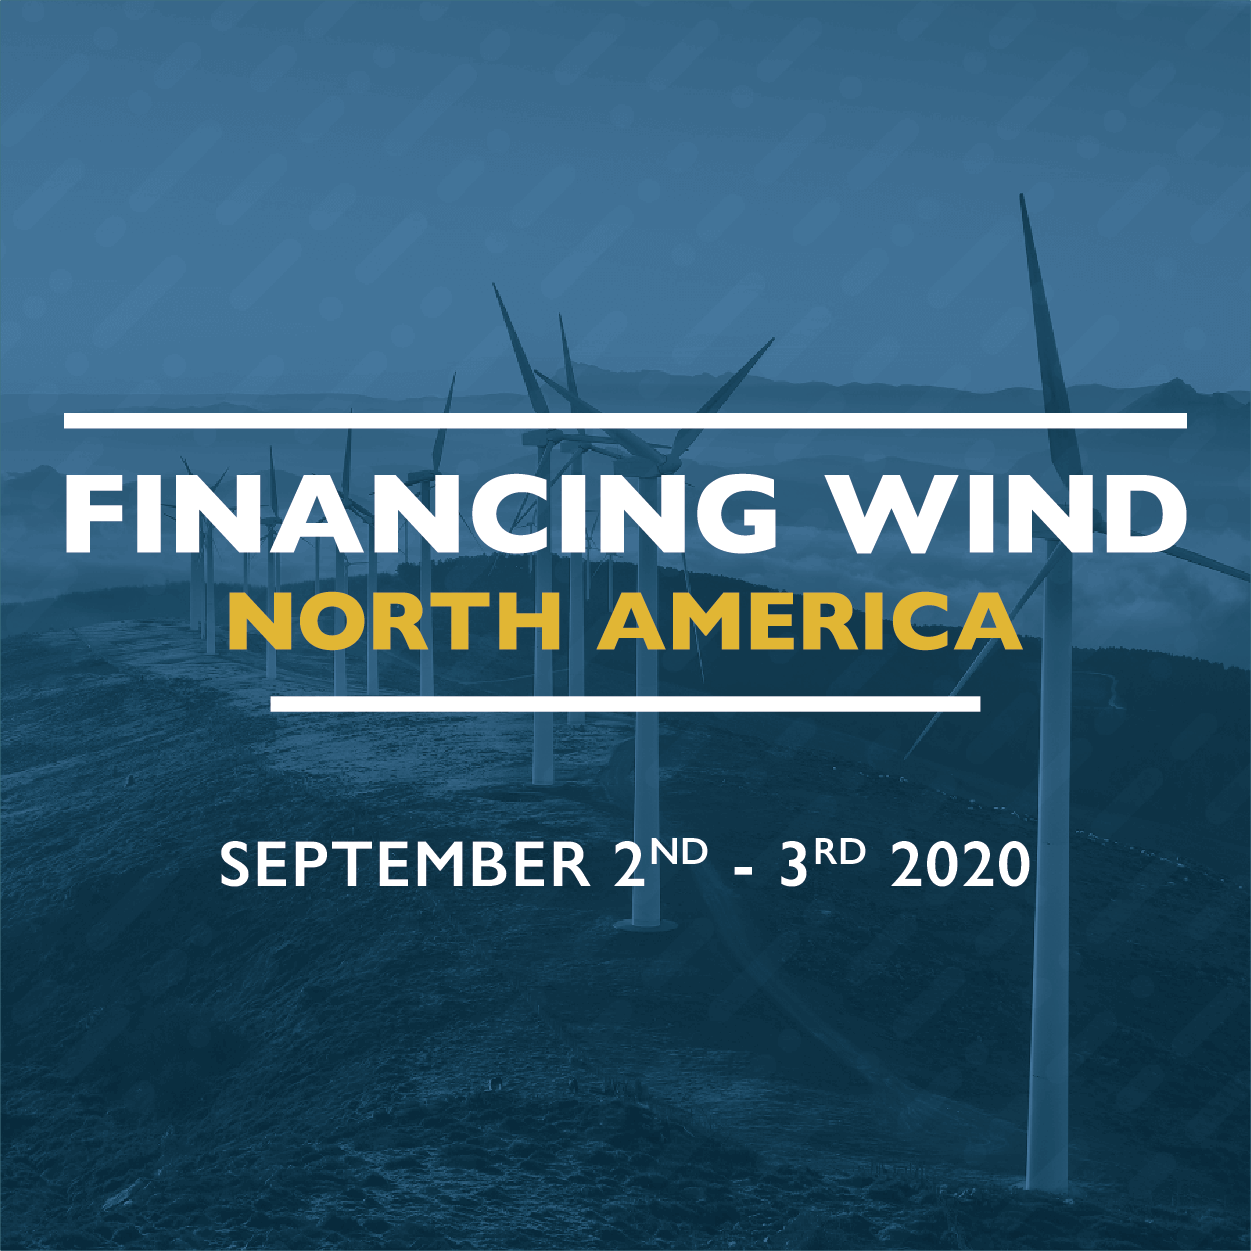 Financing Wind North America is pivoting virtual